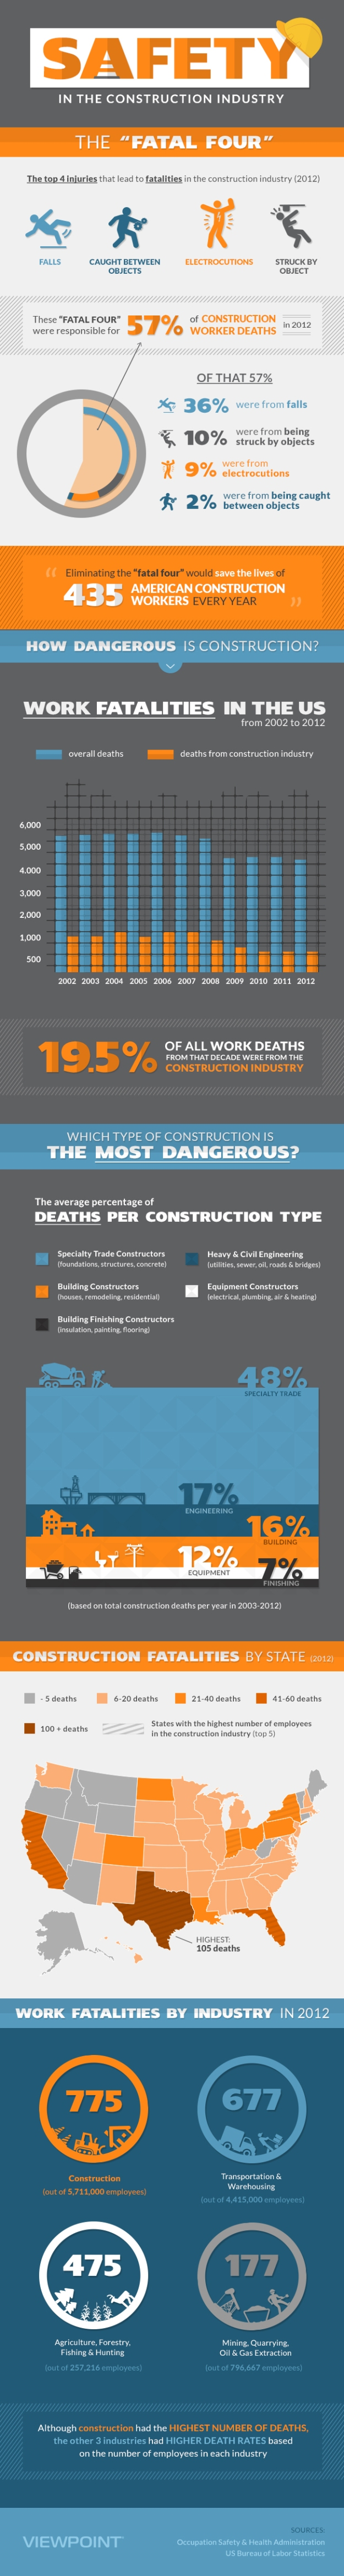 Viewpoint - Safety in the Construction Industry [Infographic]